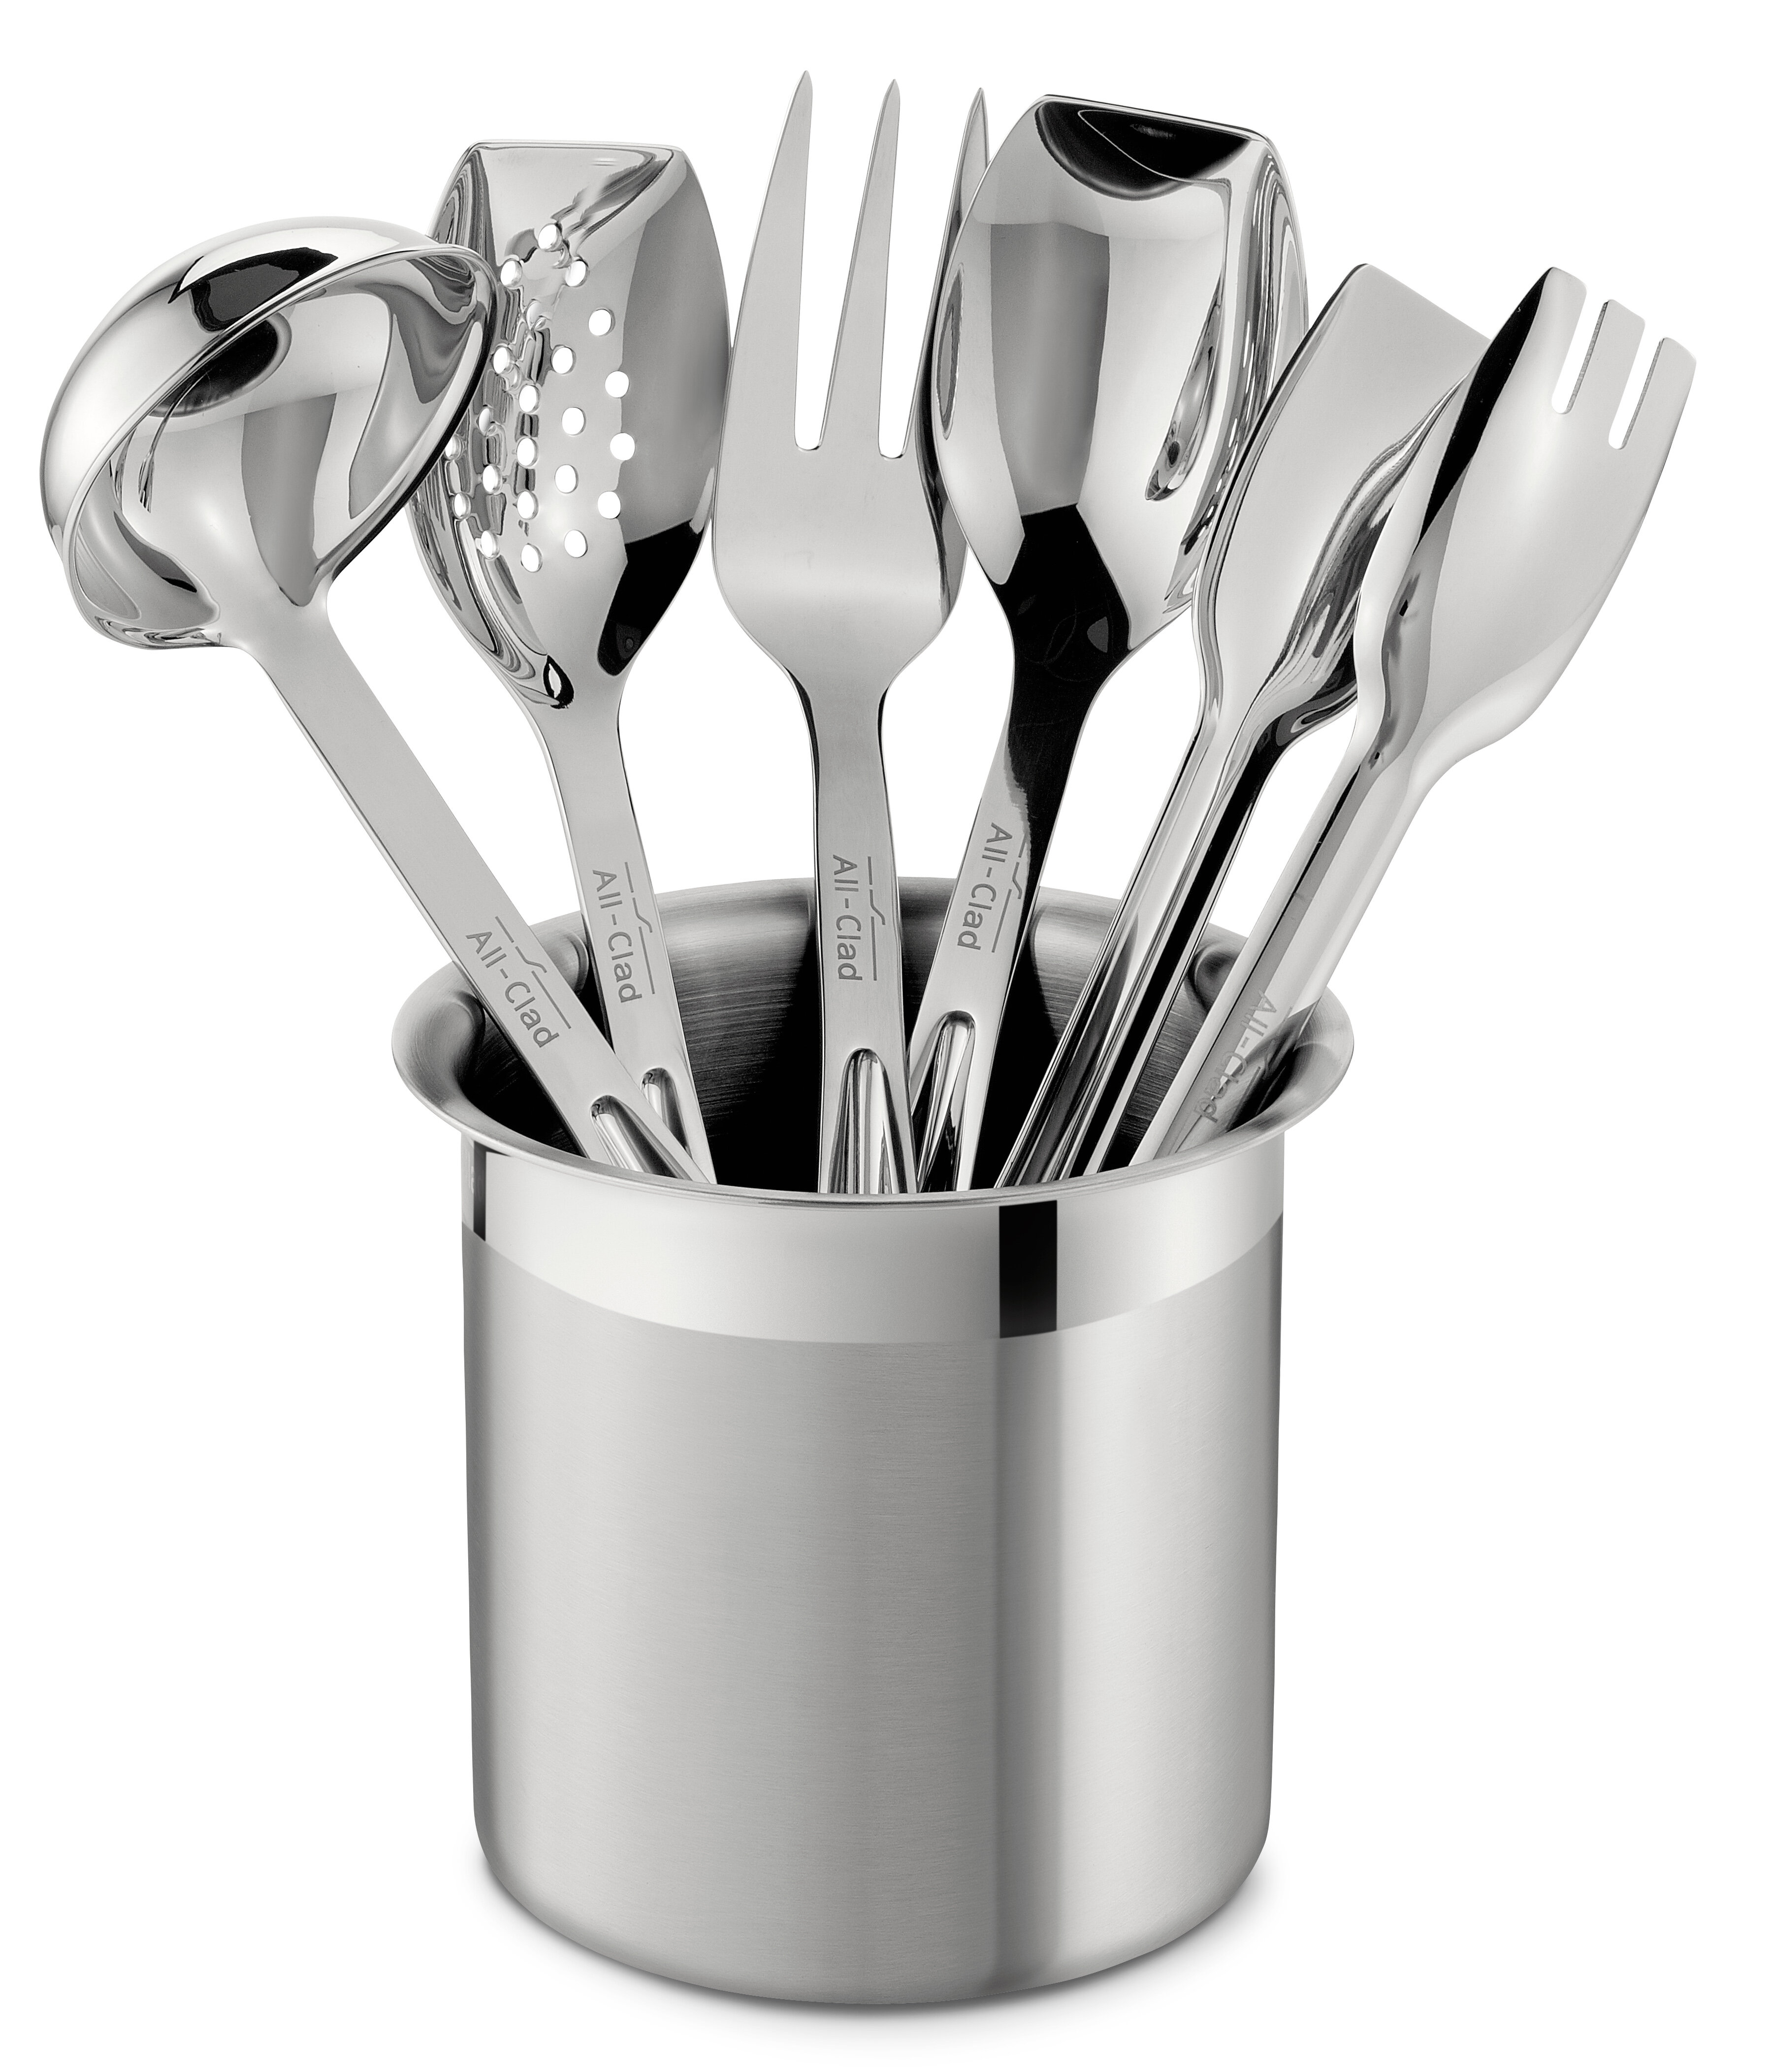 All-Clad All Professional Tools 6 Piece Cook Serve Tool Utensil Set ...